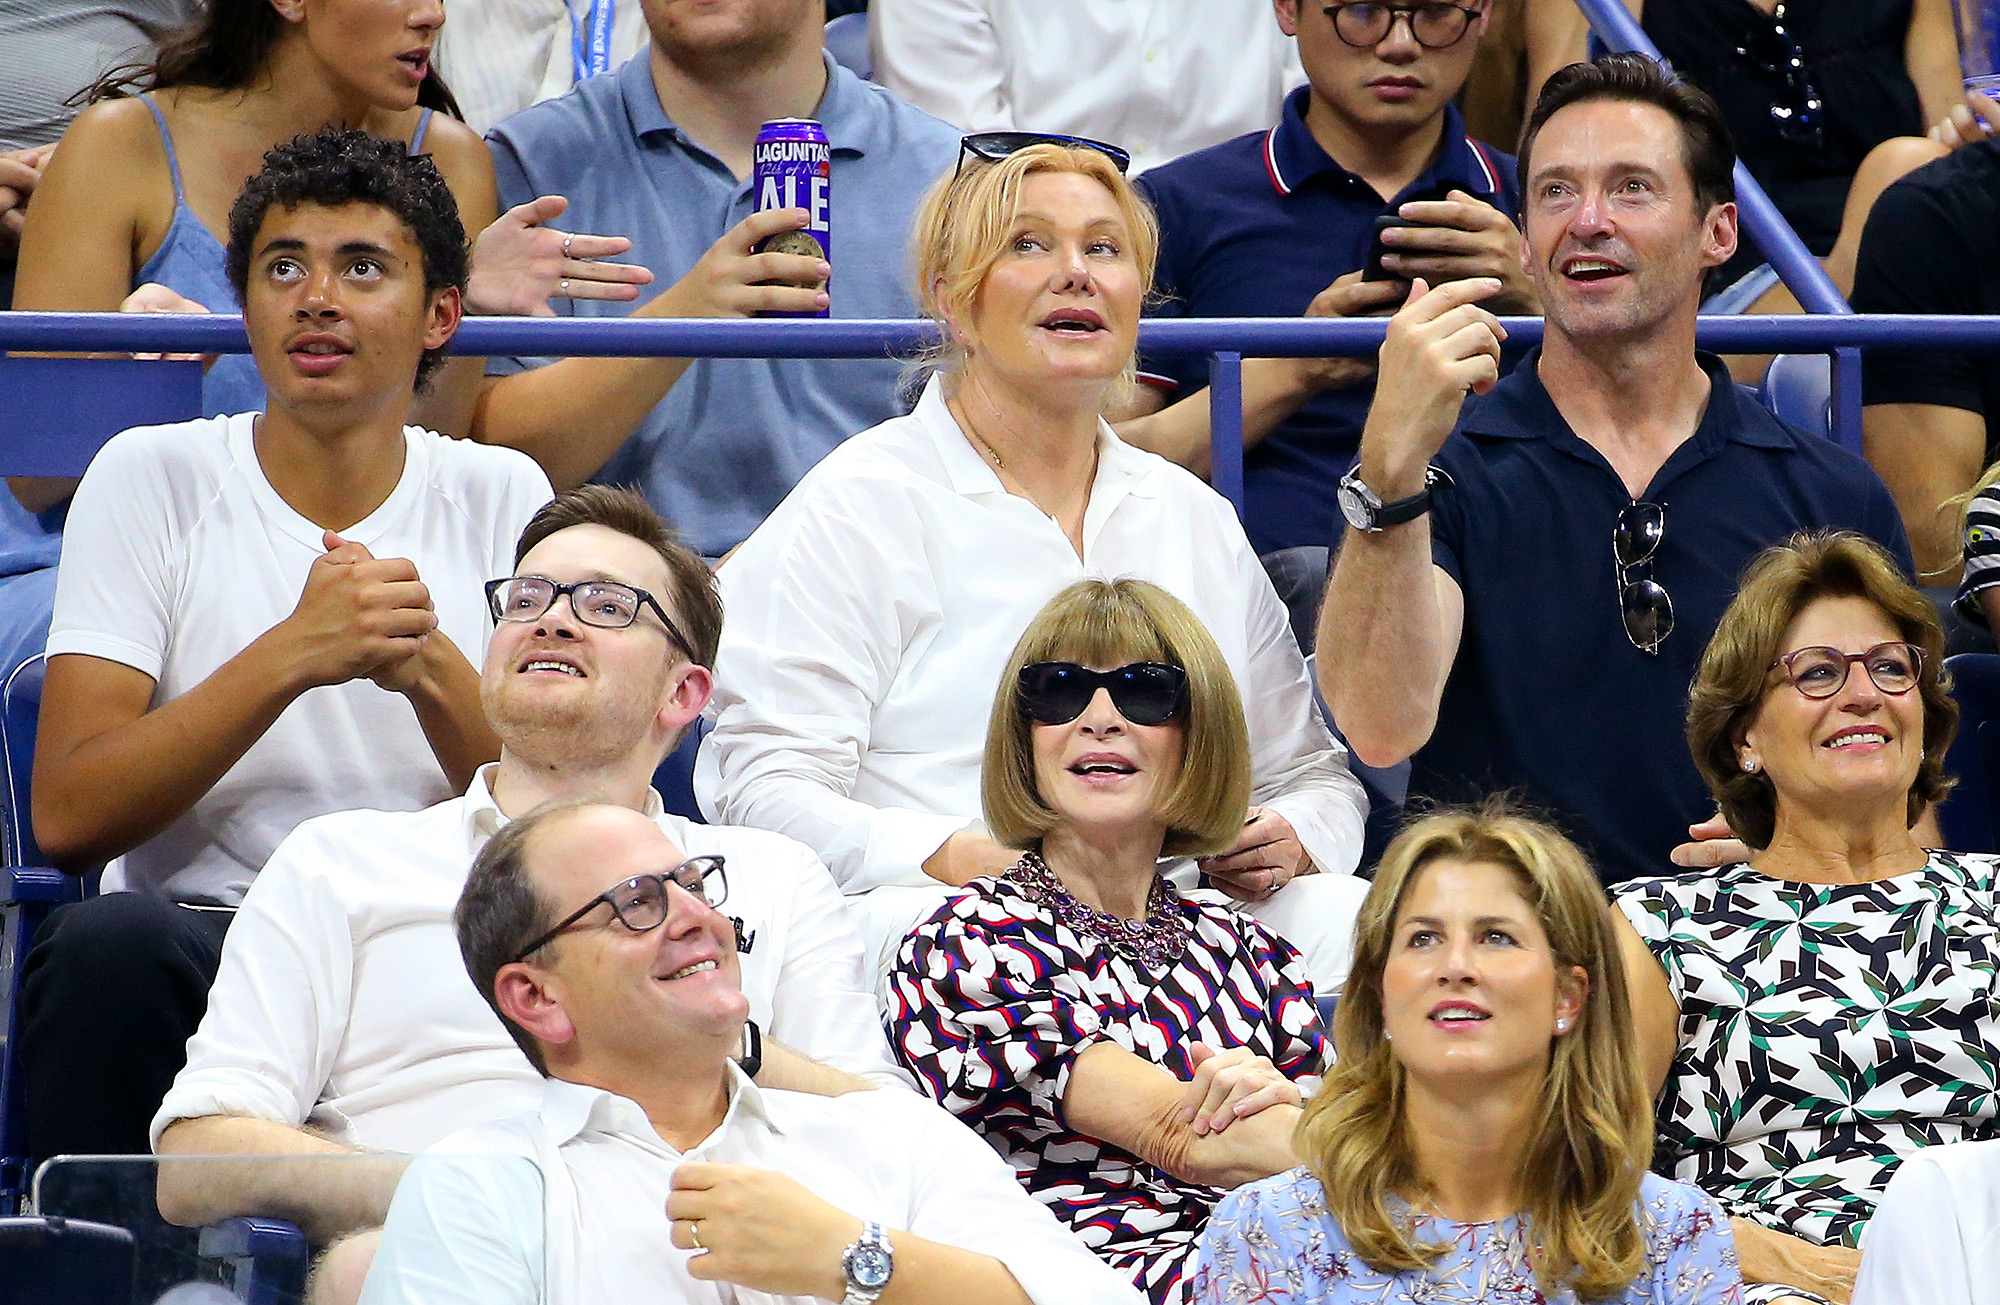 Celebrities Attend The 2018 US Open Tennis Championships - Day 2